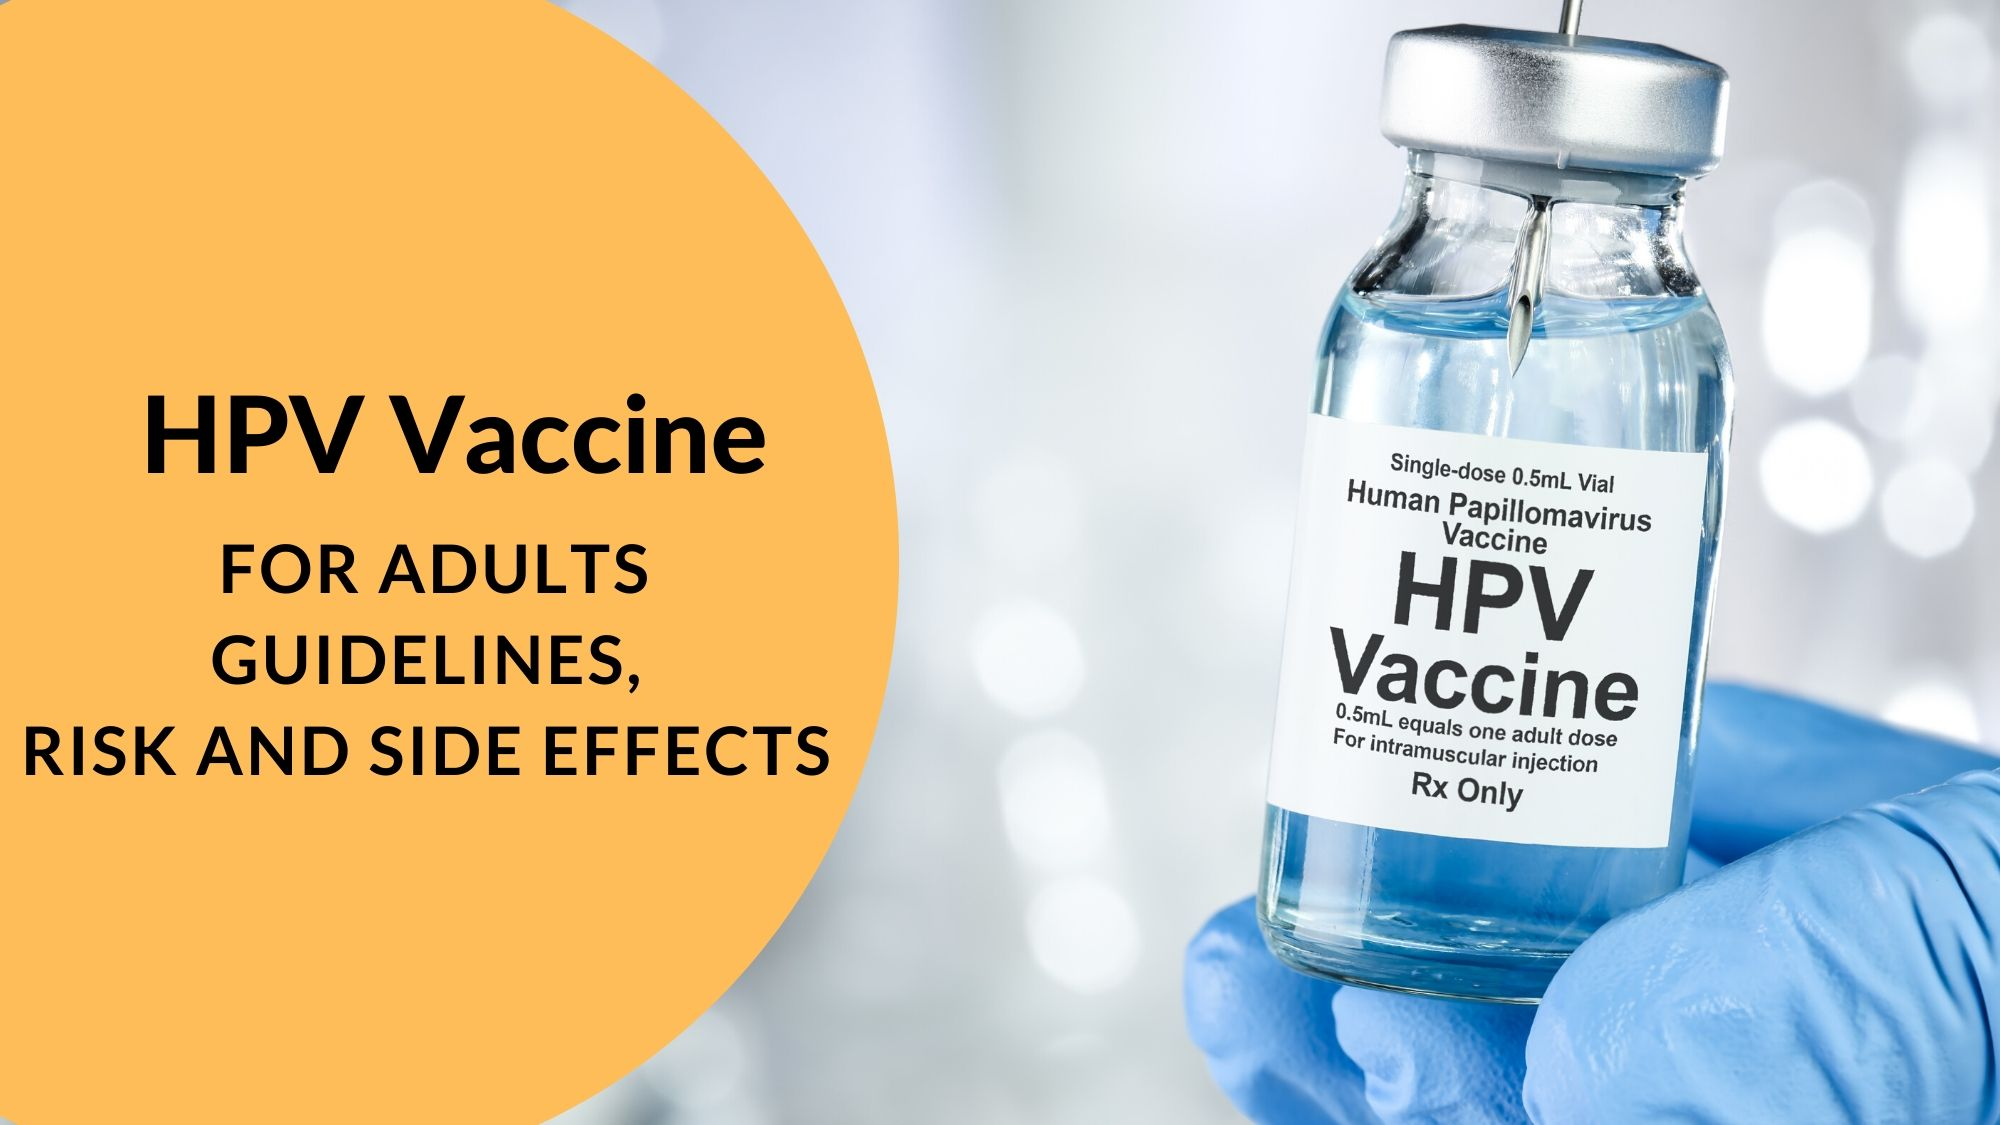 Socant ! - Page 39 - Forumul Softpedia, Hpv vaccination side effects uk